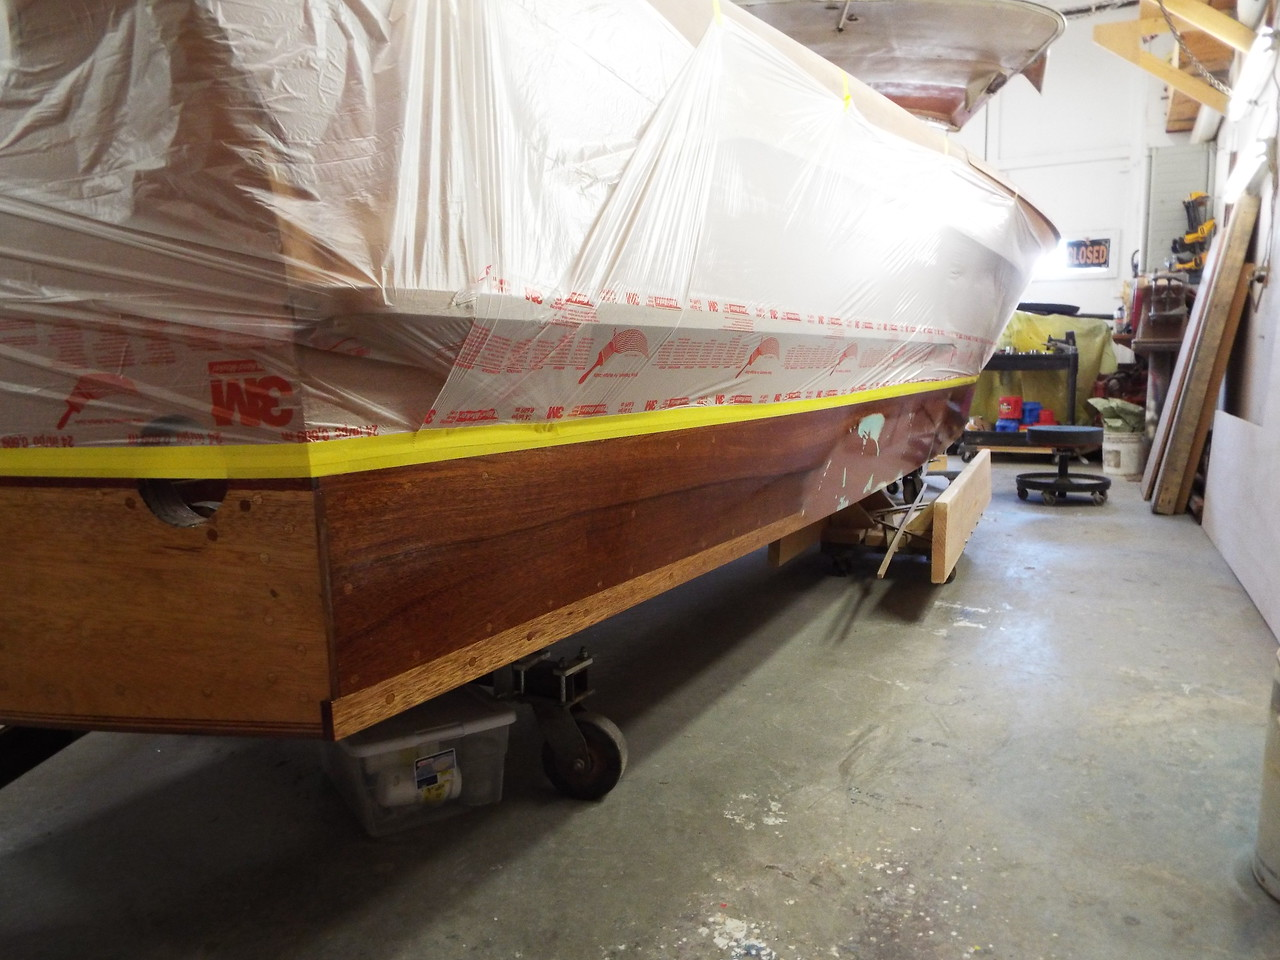 Rear starboard view with the first coat of epoxy applied.